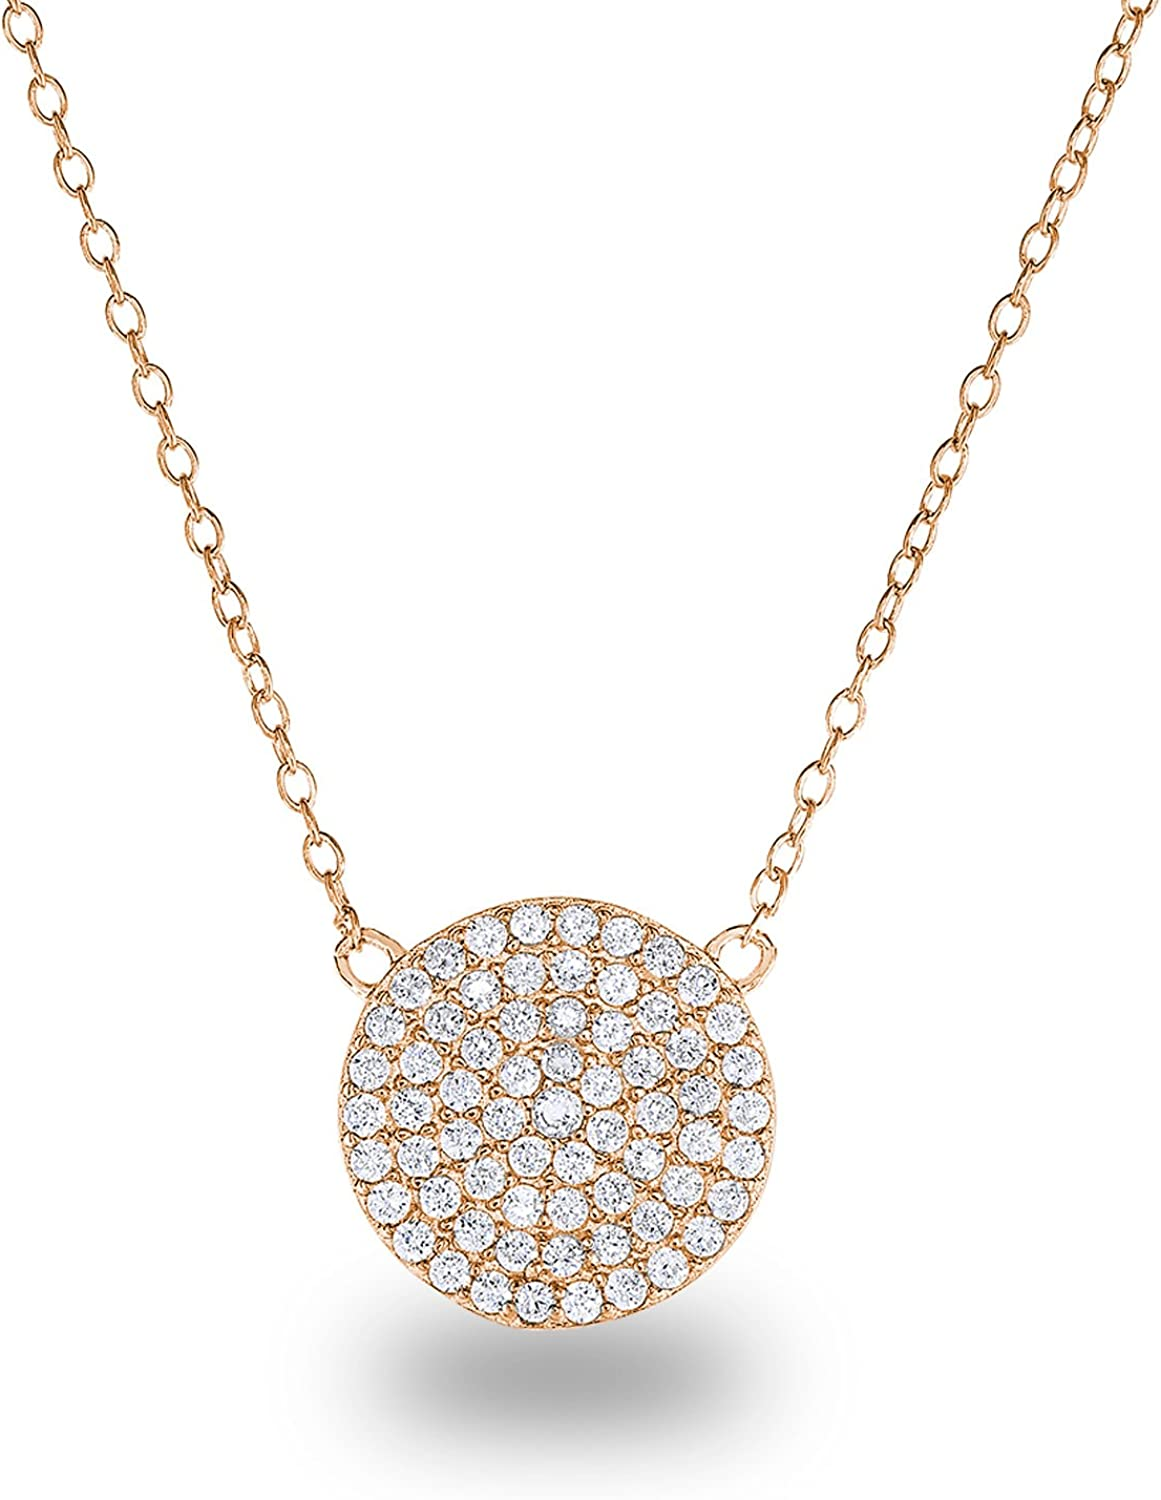 Spoil Cupid 14K Gold Plated 925 Sterling Silver Cubic Zirconia Disc Necklace With Circle Pendant 12mm Diameter, 18 Inch